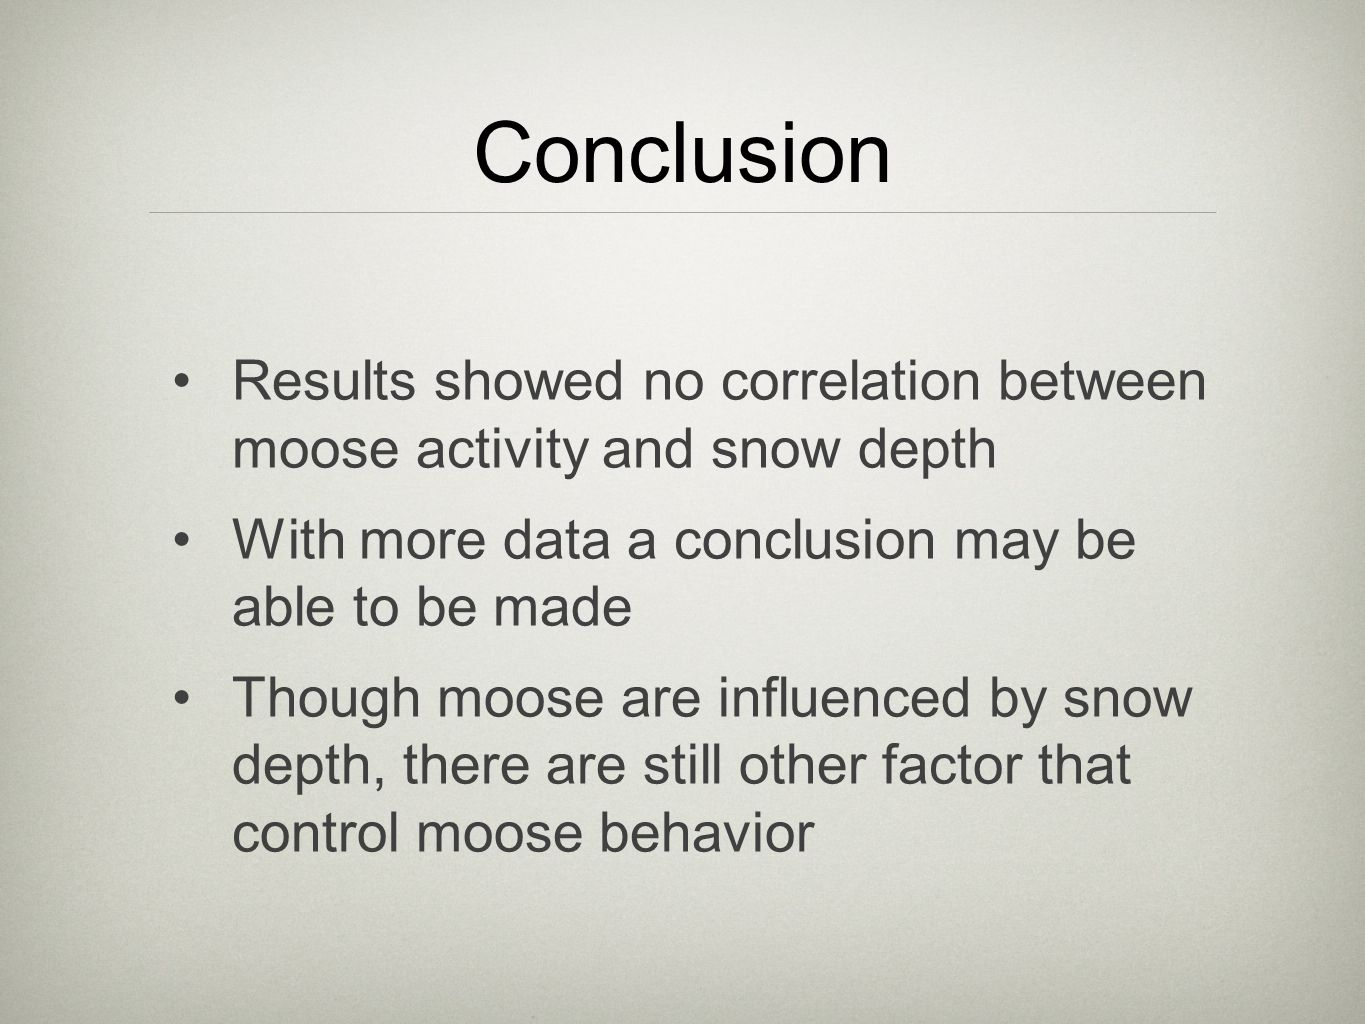 Conclusion Results showed no correlation between moose activity and snow depth With more data a conclusion may be able to be made Though moose are influenced by snow depth, there are still other factor that control moose behavior